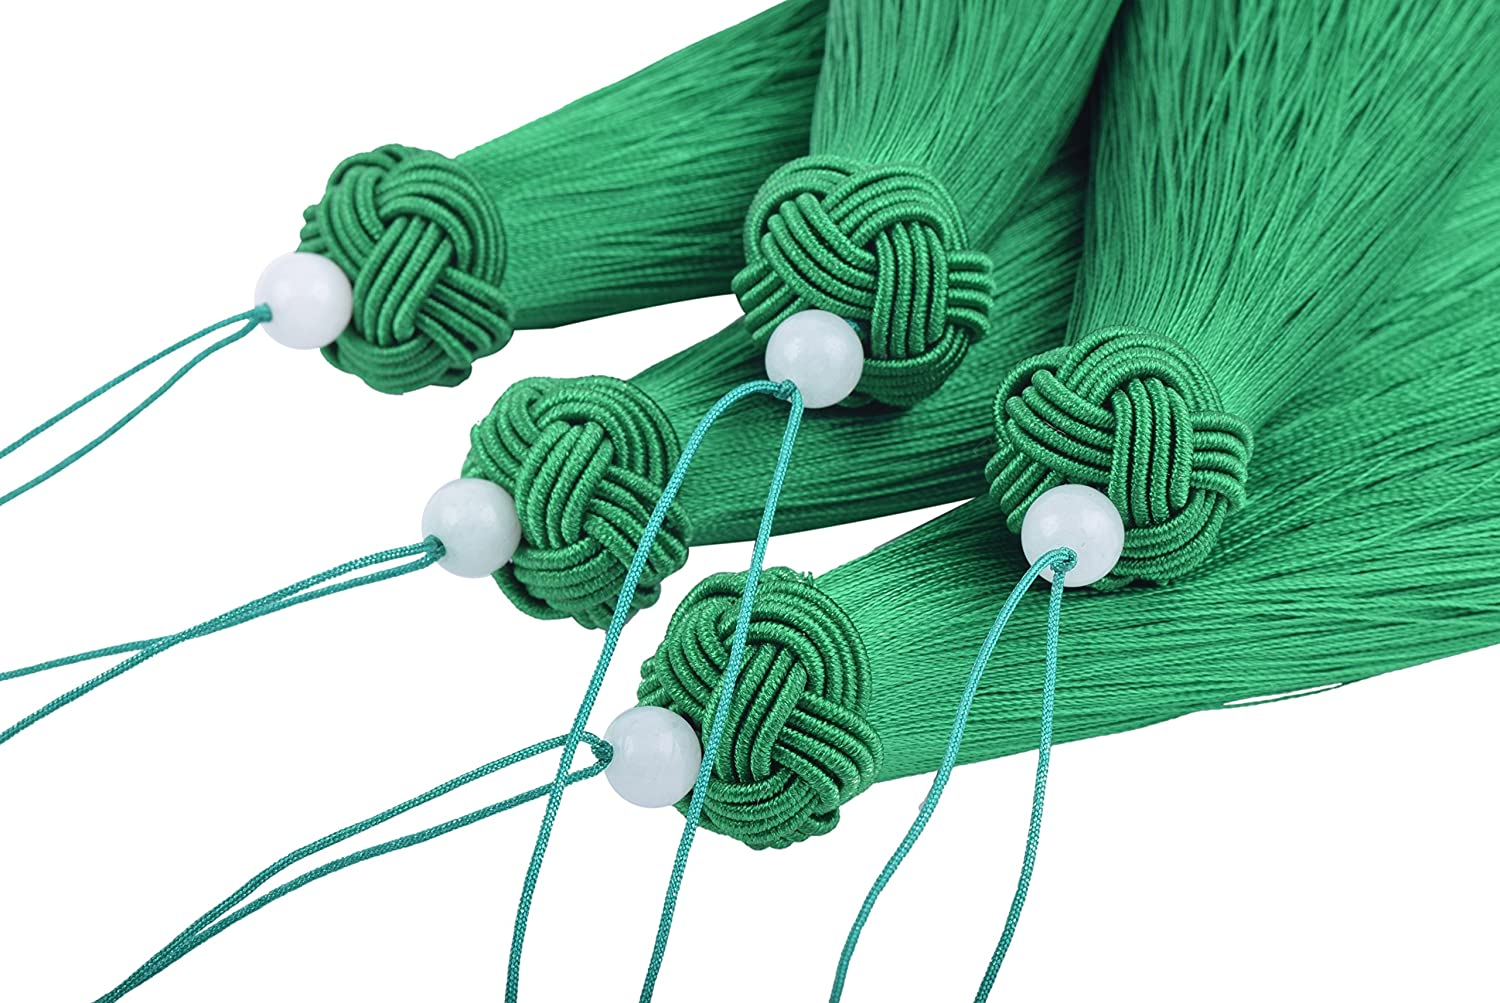 KONMAY 2pcs 6.4''(16.0cm) Large and Long Handmade Imitation Silk Tassels with Threaded Cap and Jade Beads (Chocolate)